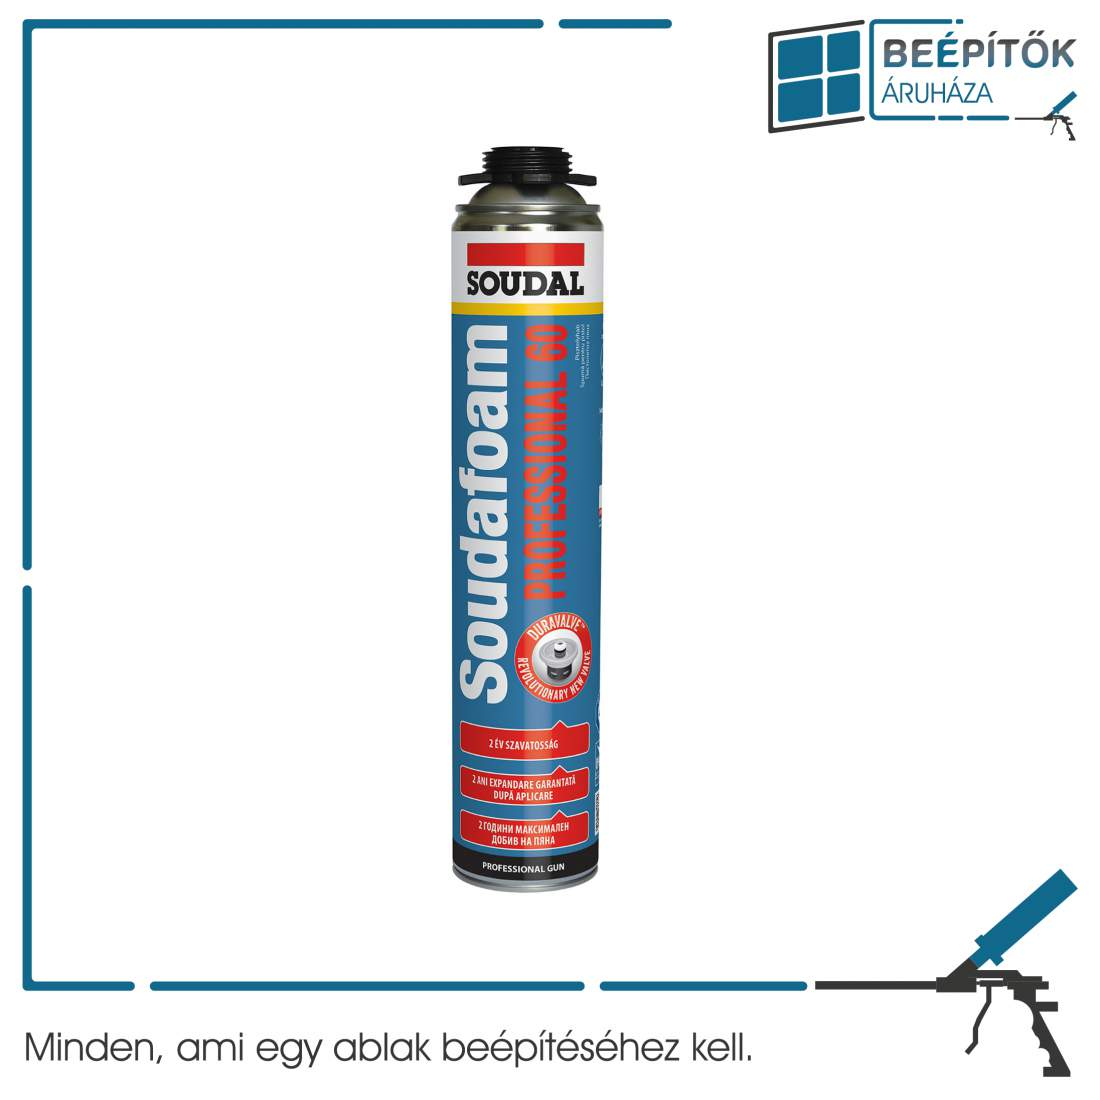 Soudal Professional 60 pisztolyhab